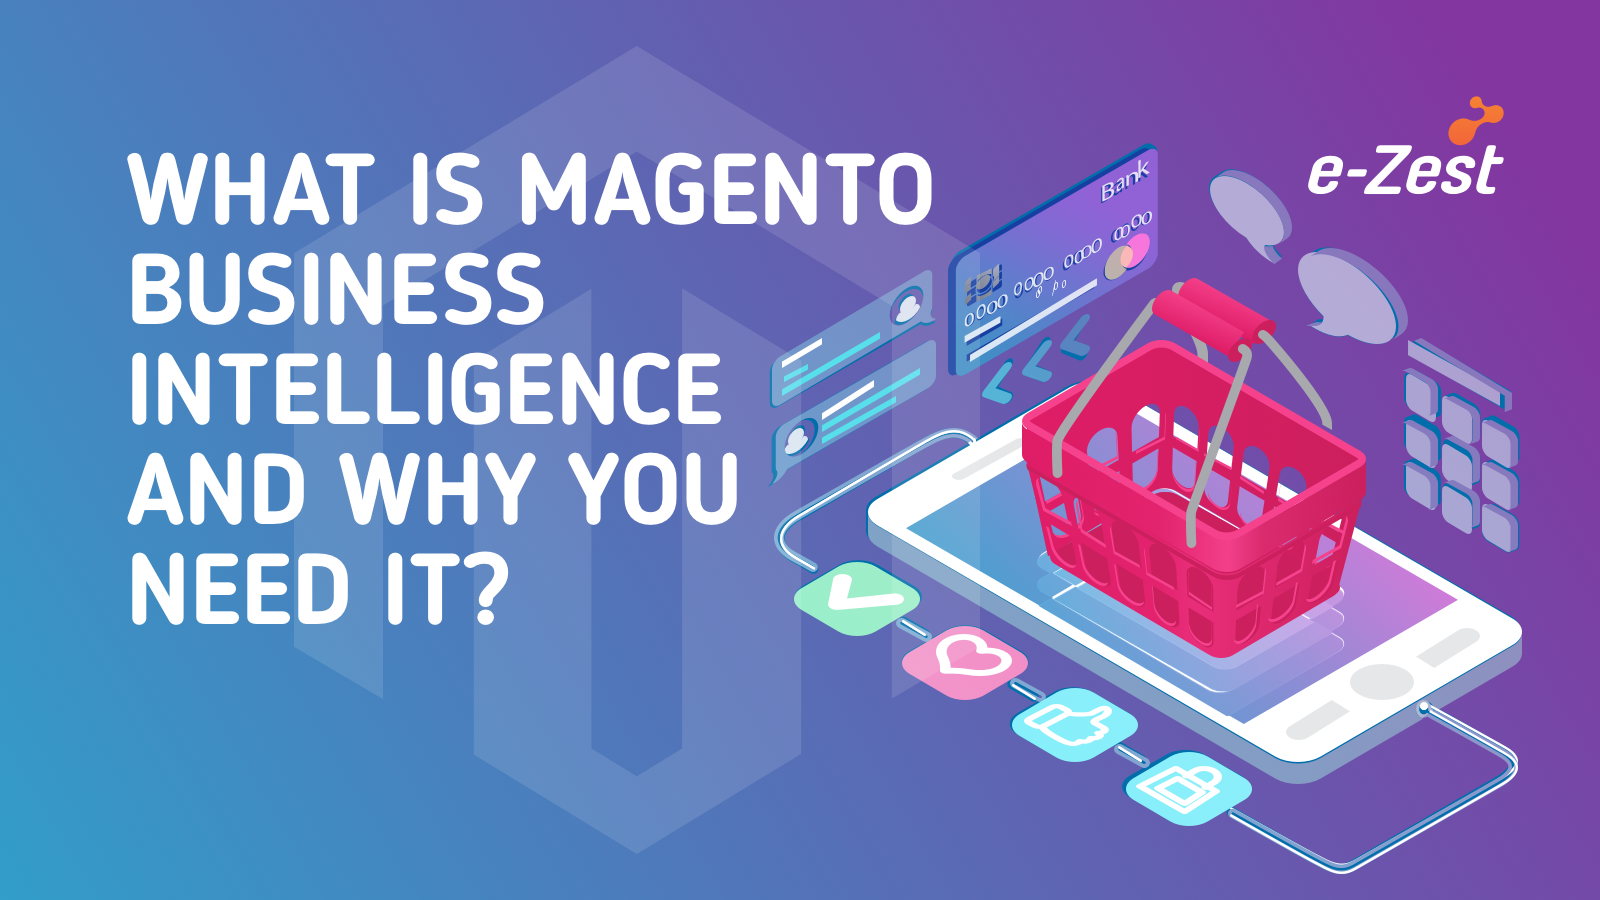 What is Magento Business Intelligence and why you need it?